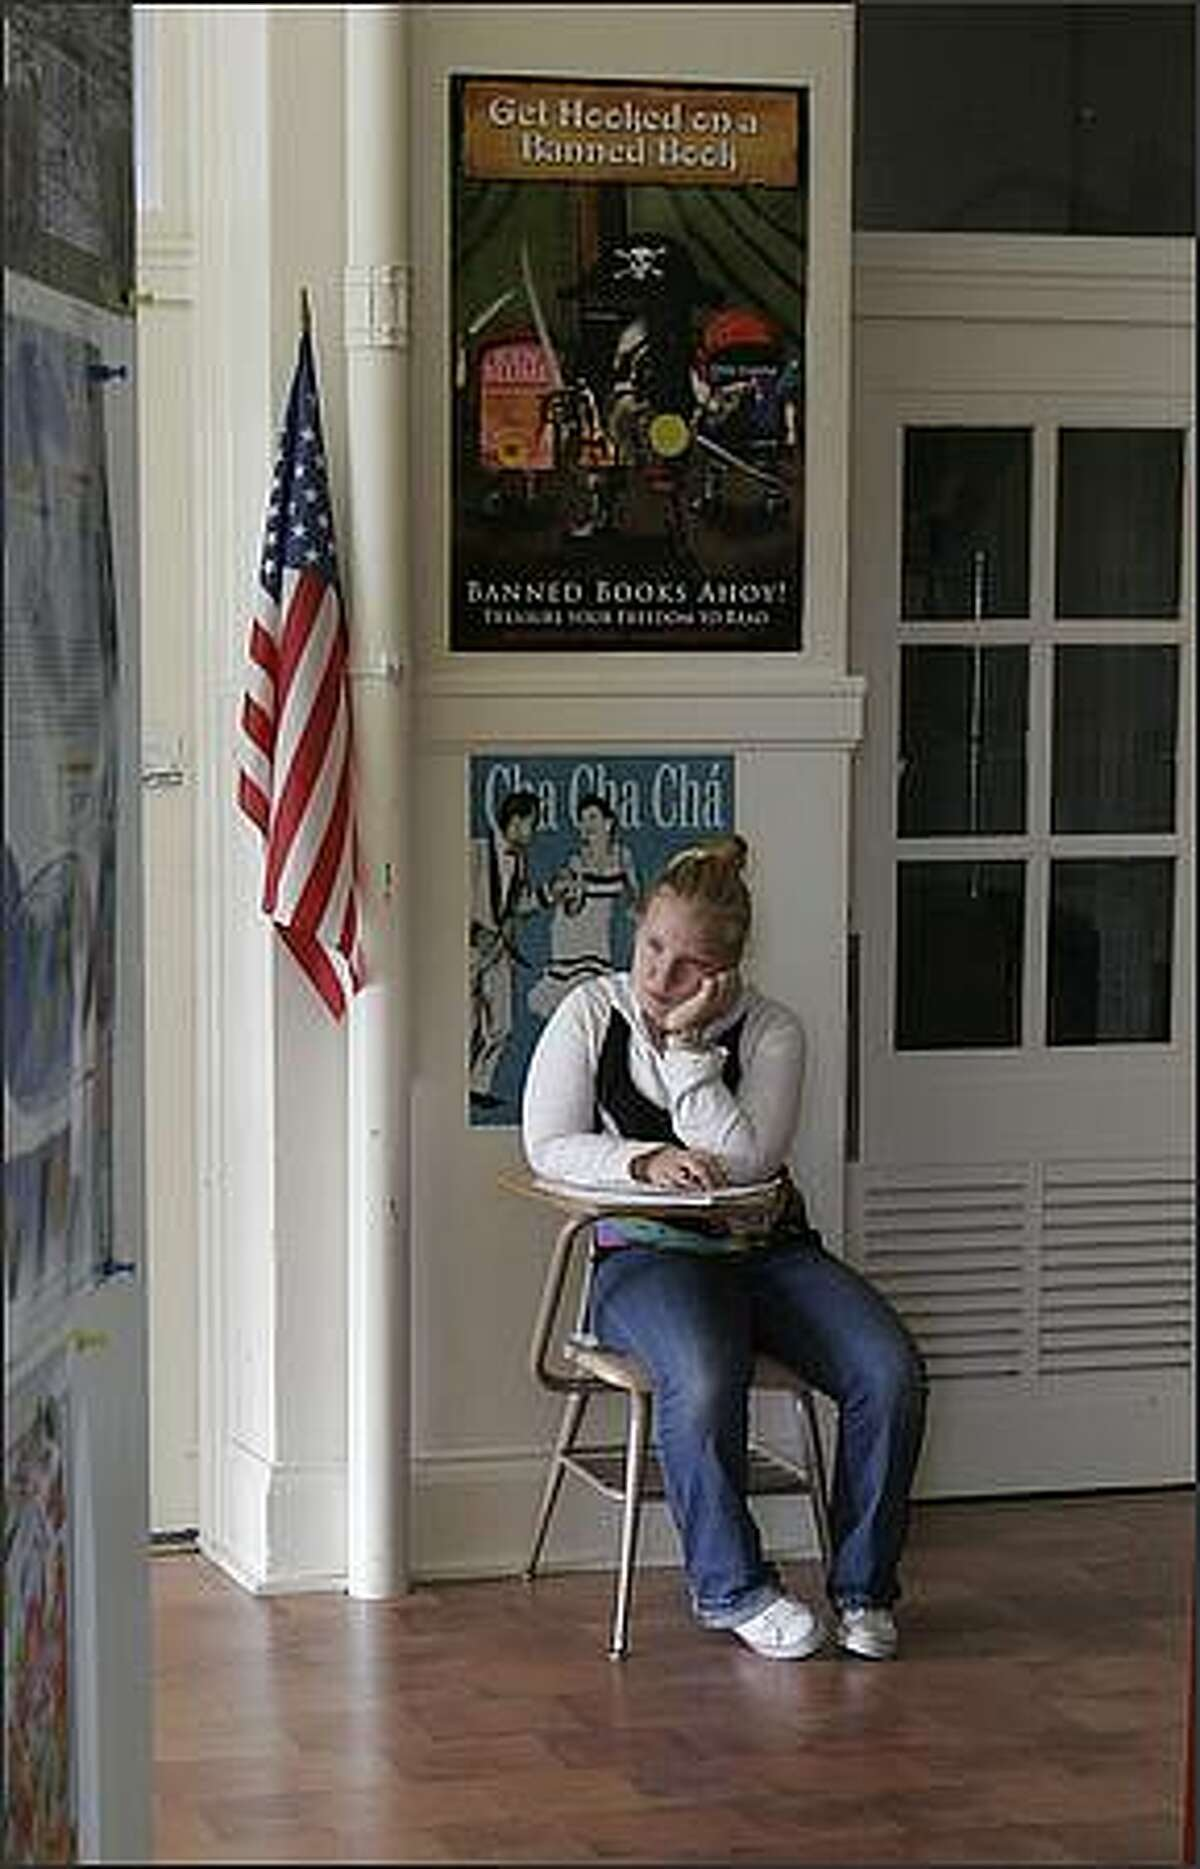 Eighth-grade student Jenalysse Renaud takes a moment to collect herself outside a classroom at Lake Washington Girls Middle School.